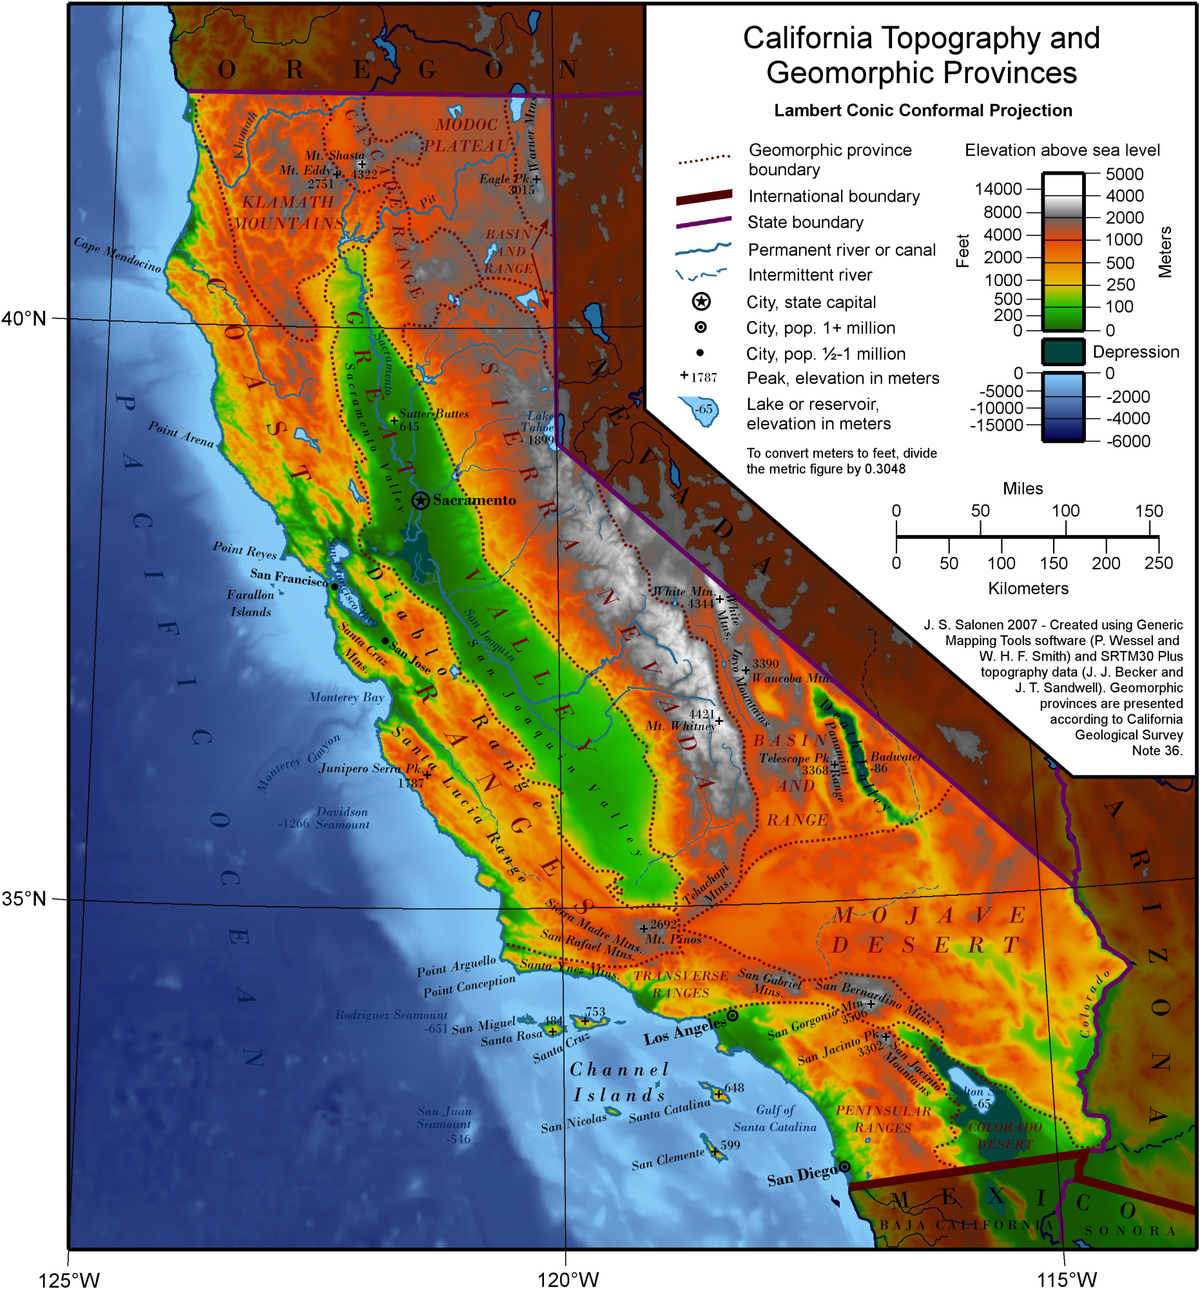 Geography Of California Google Maps California Southern California - California Elevation Map